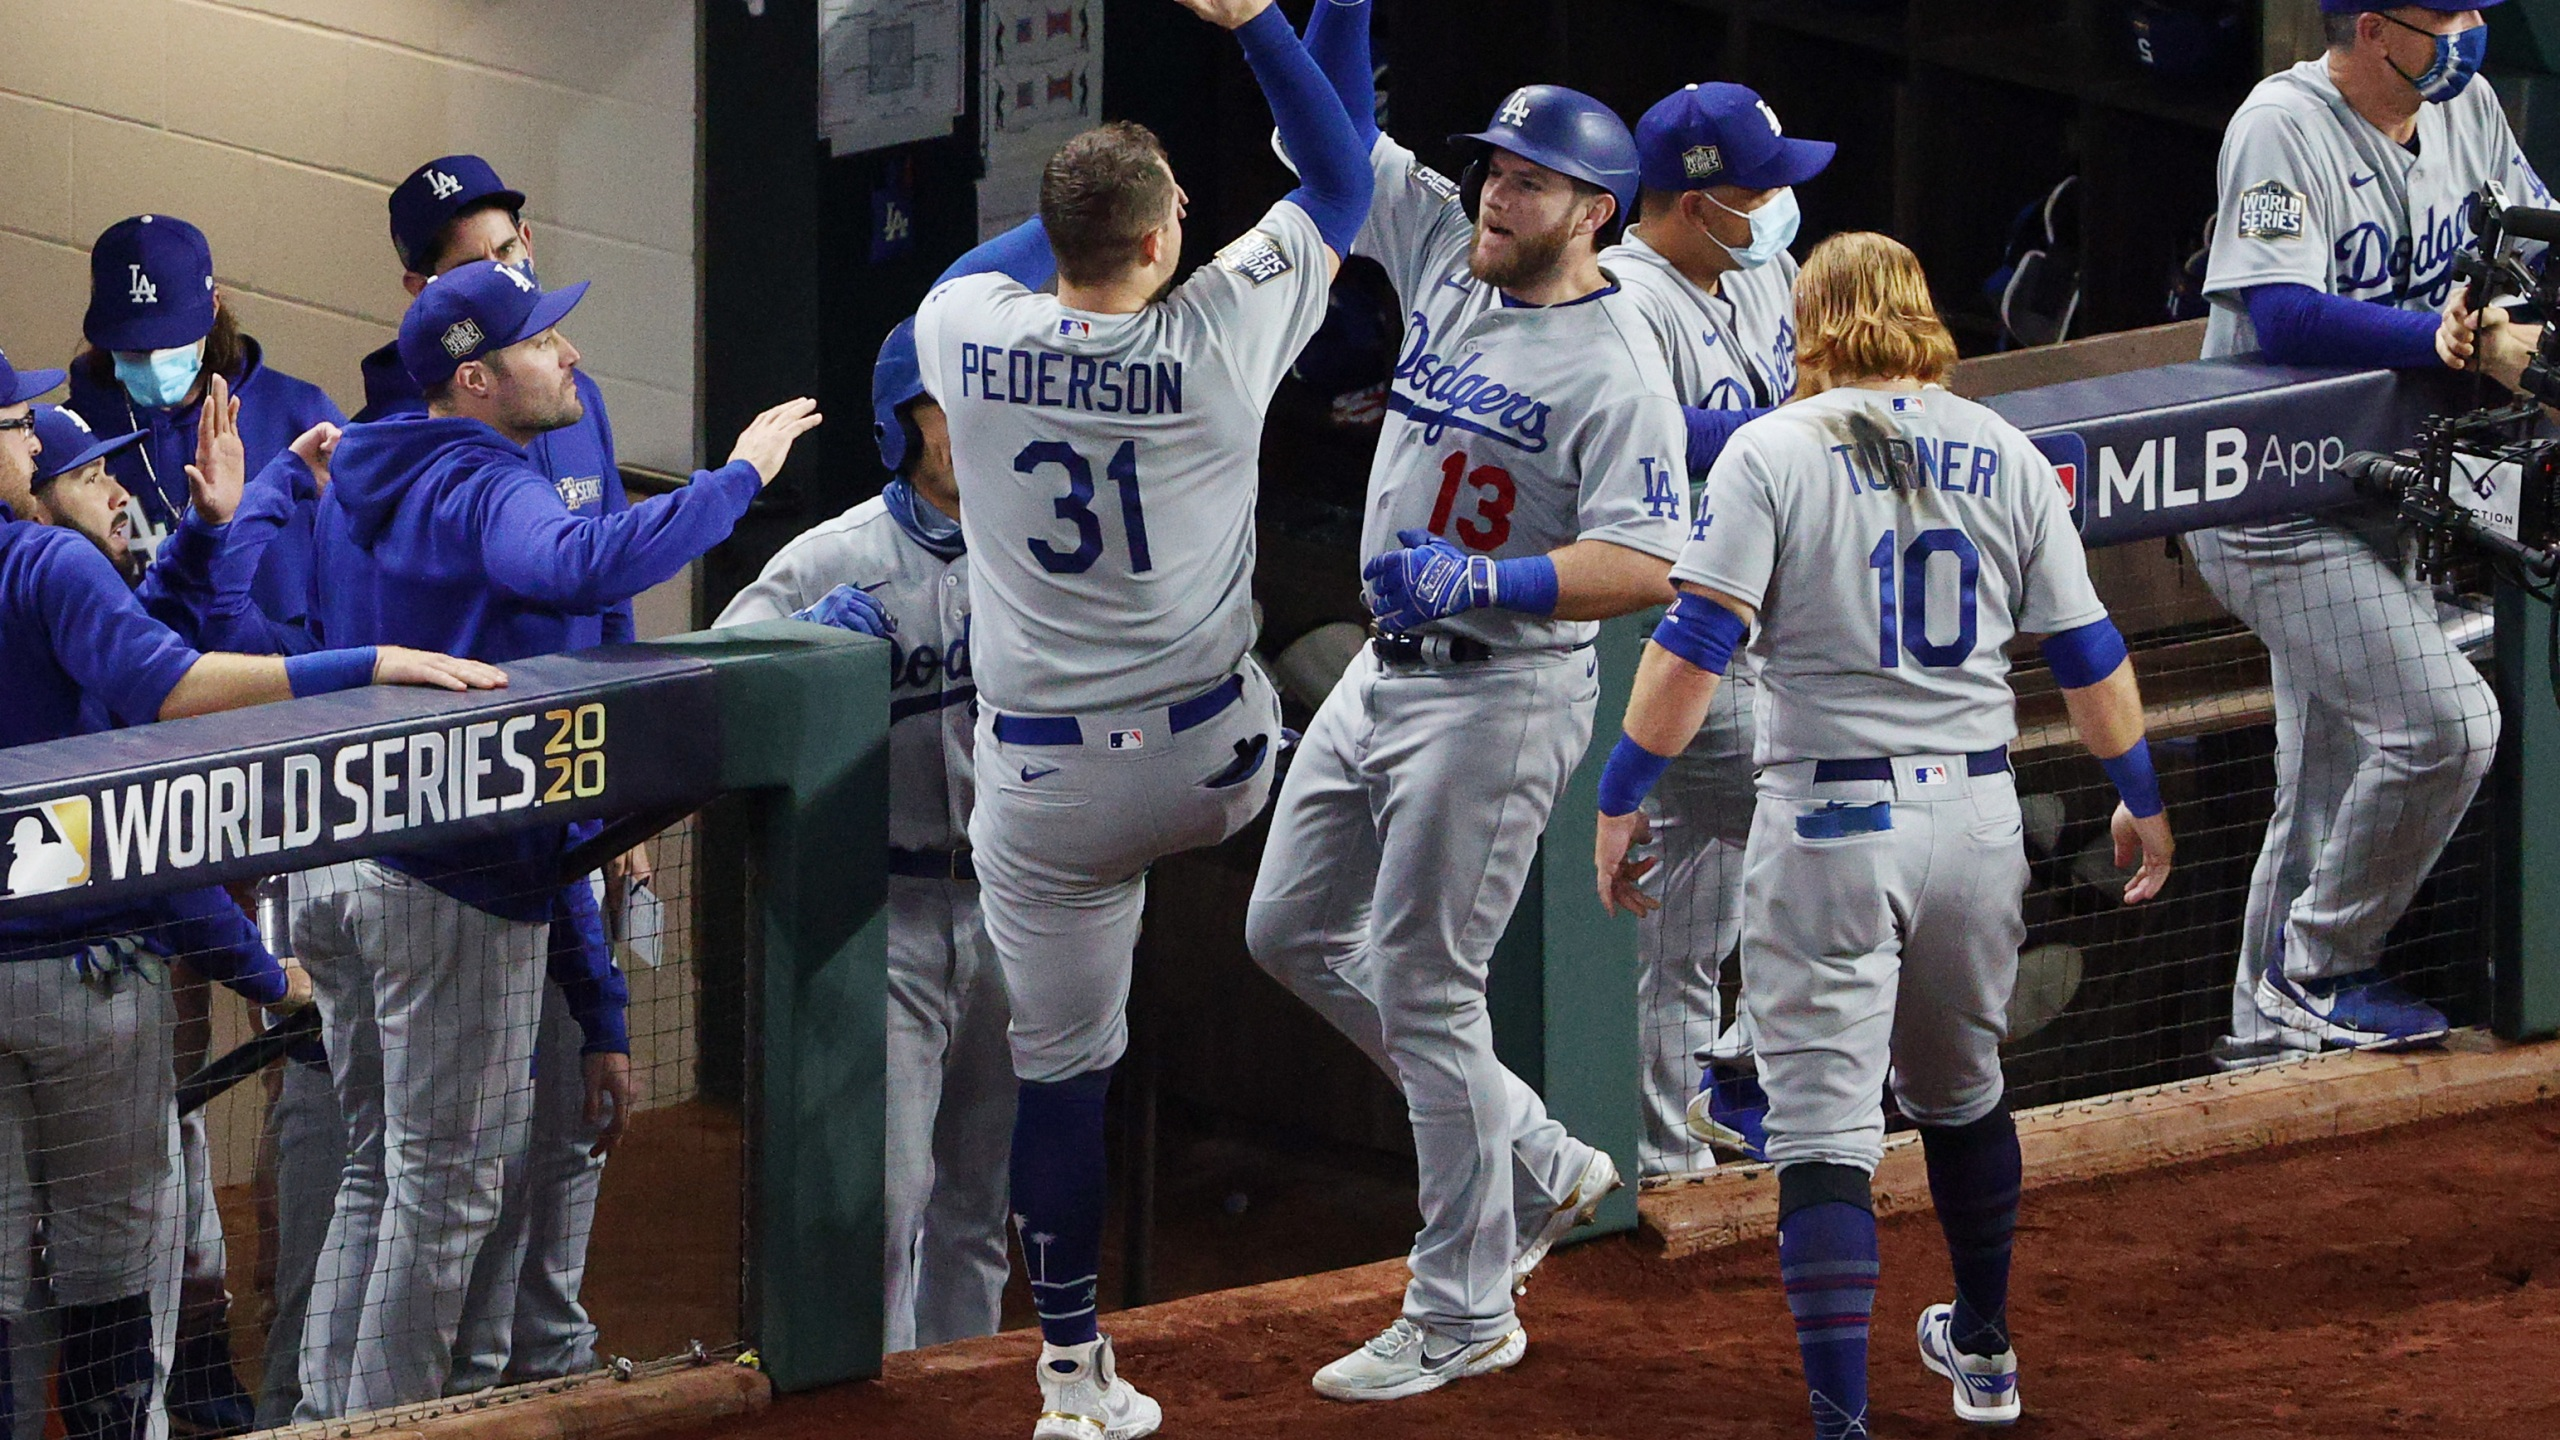 Max Muncy #13 of the Los Angeles Dodgers is congratulated by Joc Pederson #31 and Justin Turner #10 after hitting a solo home run against the Tampa Bay Rays during the fifth inning in Game Five of the 2020 MLB World Series at Globe Life Field on Oct. 25, 2020, in Arlington, Texas. (Sean M. Haffey/Getty Images)